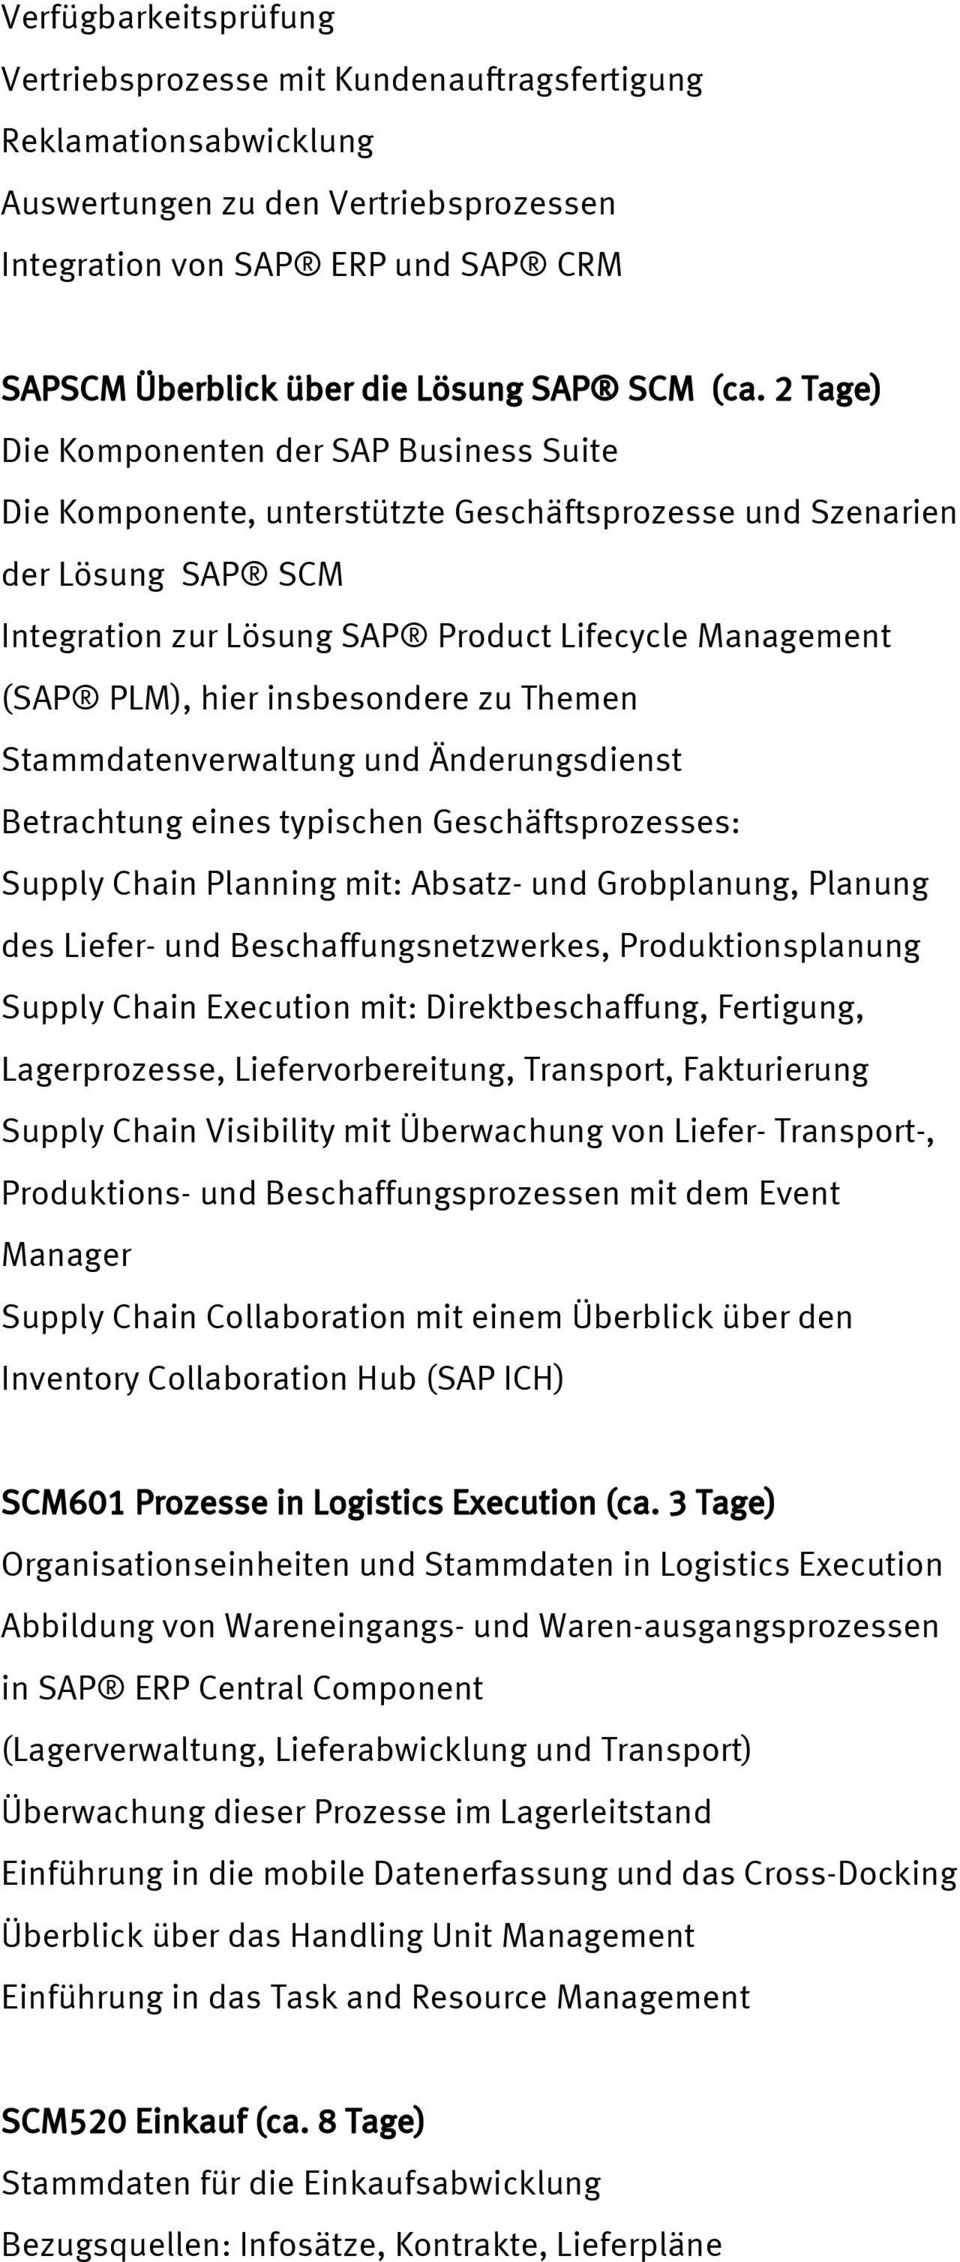 2 Tage) Die Komponenten der SAP Business Suite Die Komponente, unterstützte Geschäftsprozesse und Szenarien der Lösung SAP SCM Integration zur Lösung SAP Product Lifecycle Management (SAP PLM), hier